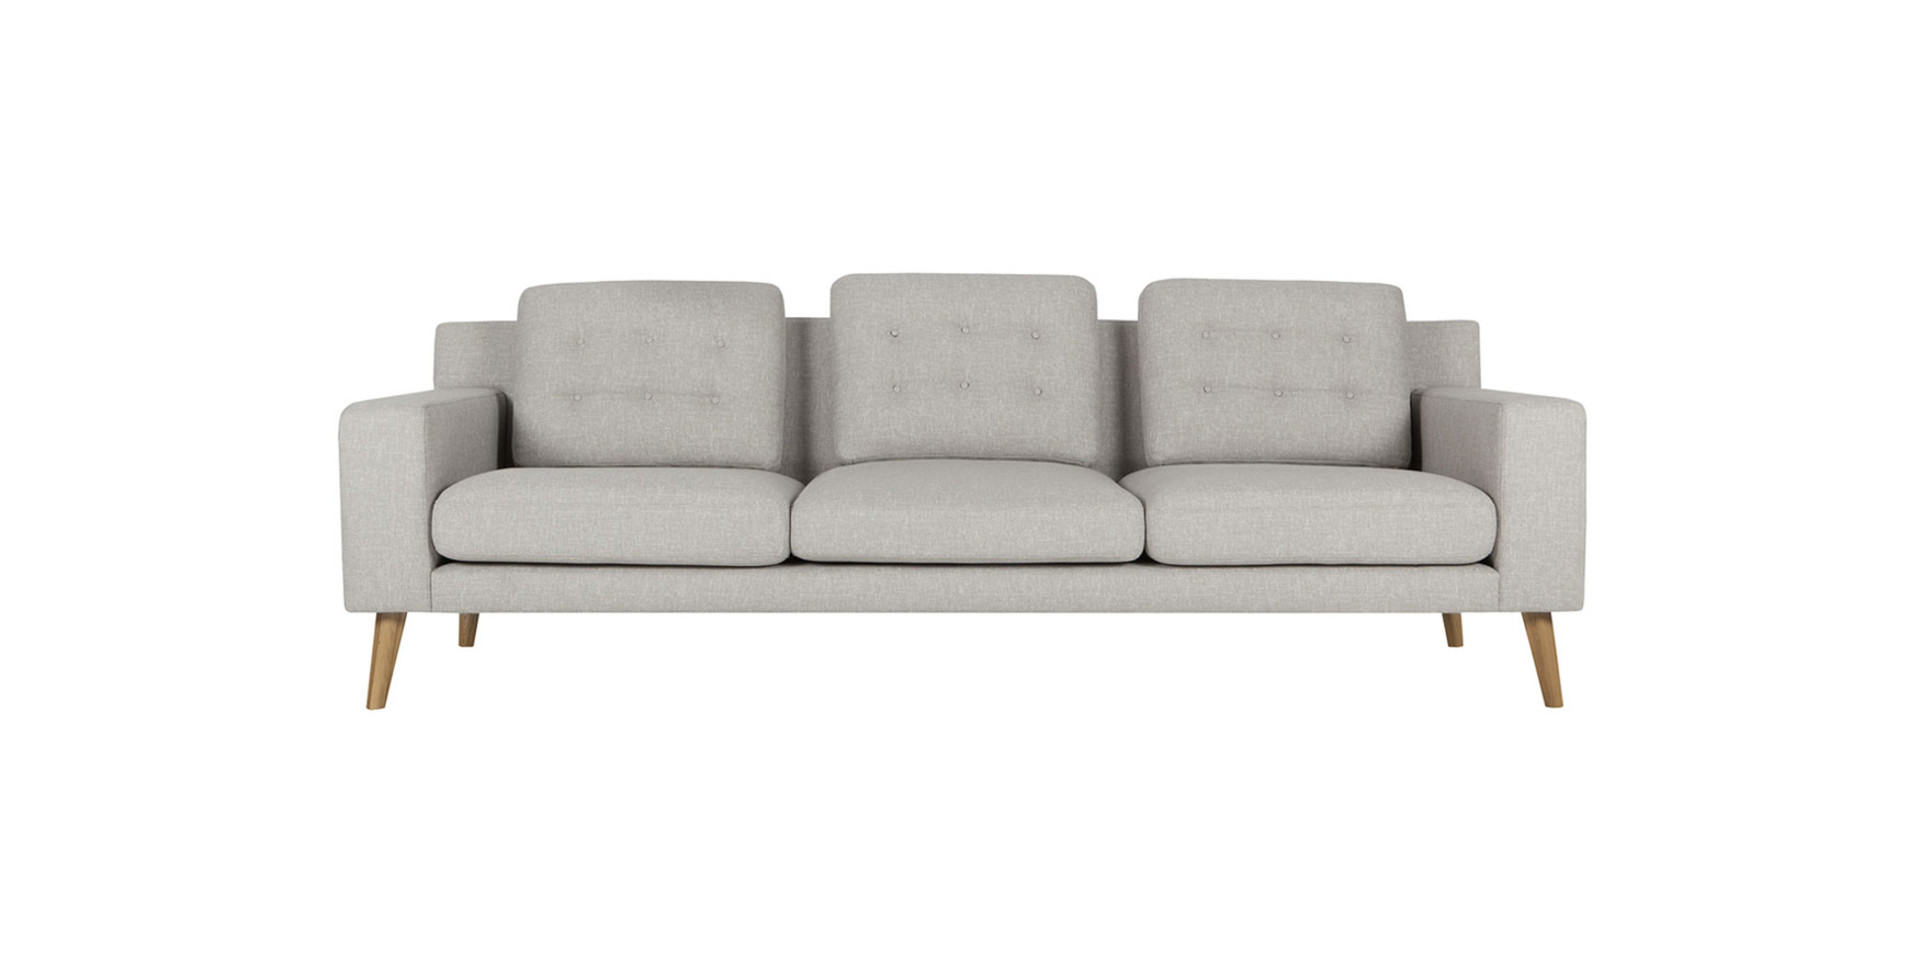 sits-axel-canape-4seater_nancy5_light_grey_1